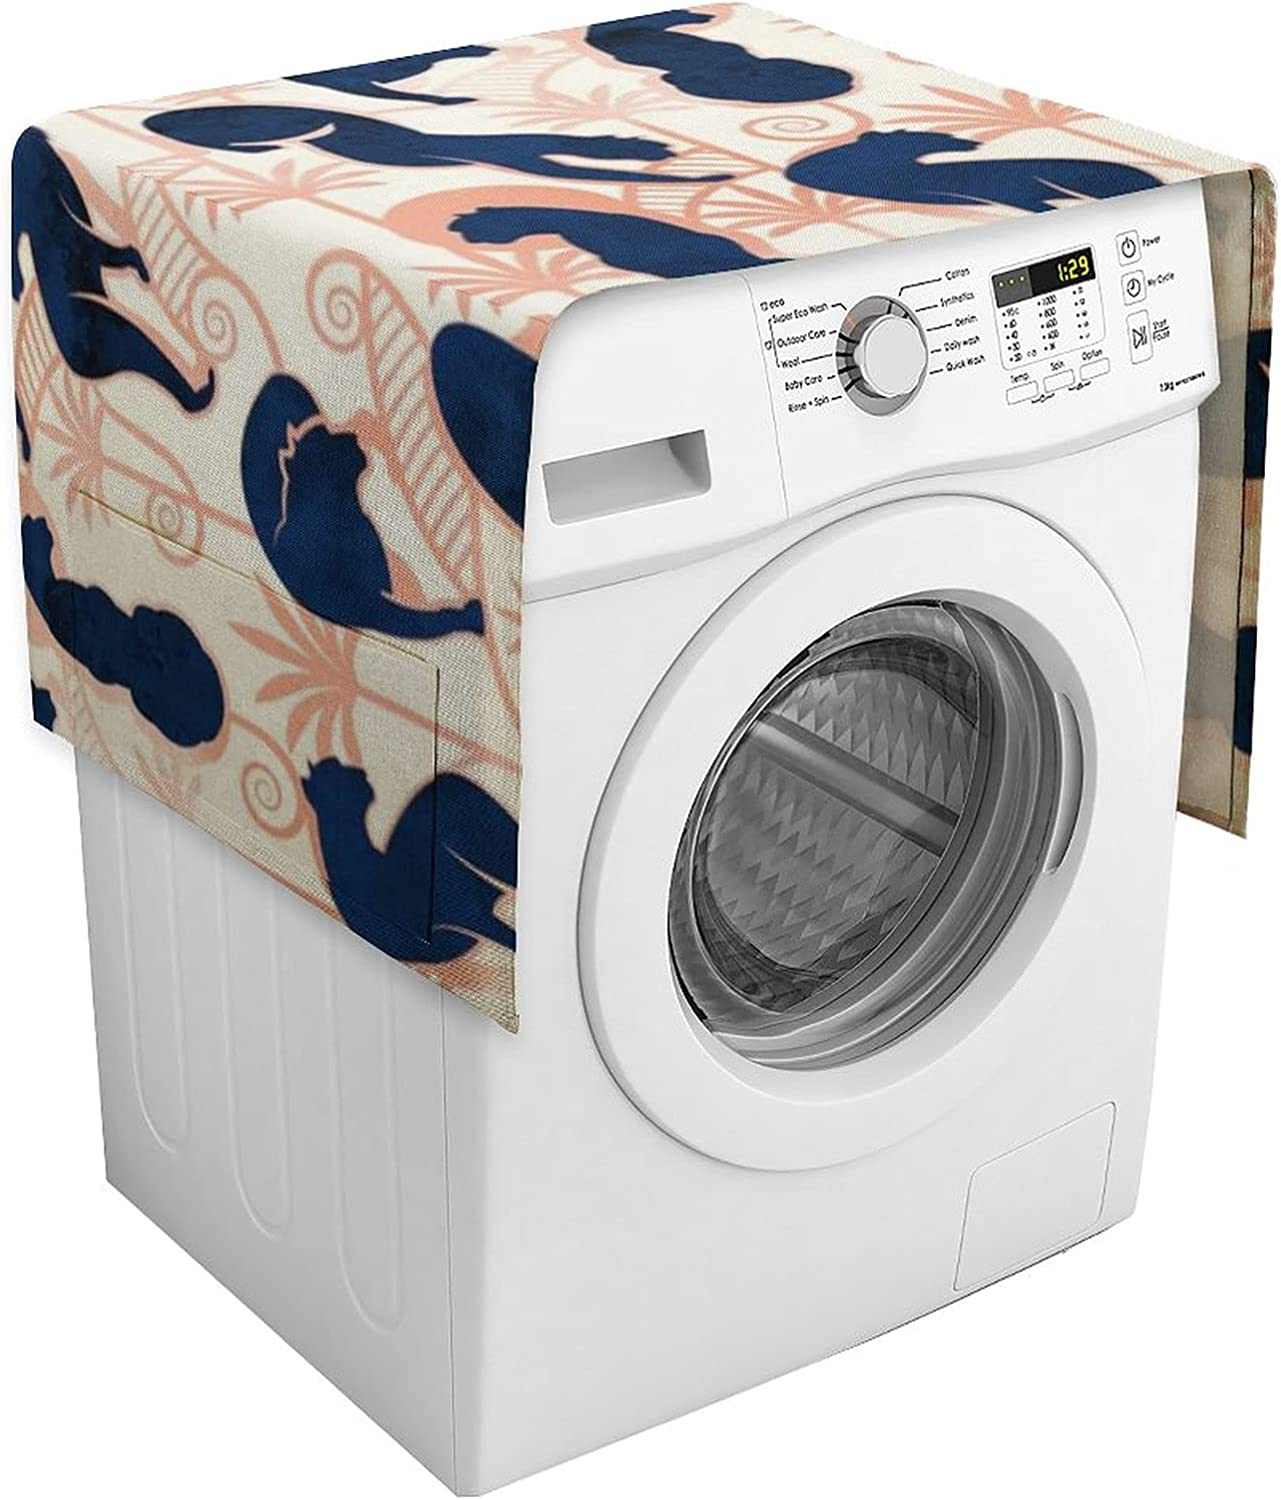 Multi-Purpose Washing Machine Covers Austin Mall Protector Appliance Washer Ranking TOP9